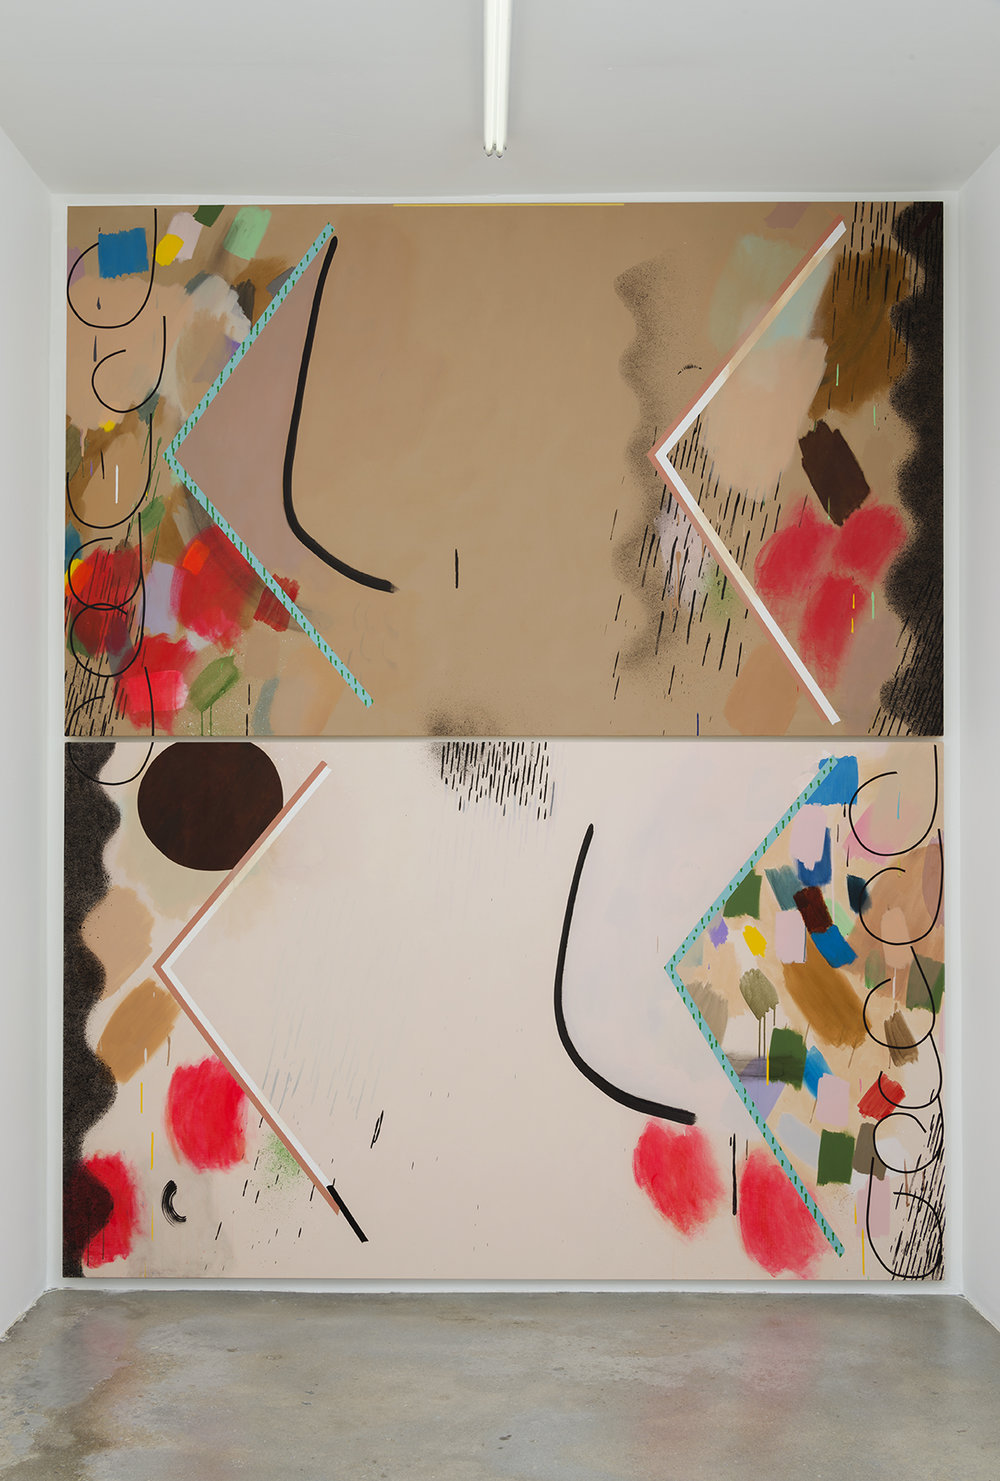 Bed, 2016 Oil, oil stick, acrylic and collage on two canvases 113 x 93 inches overall, 56.5 x 93 inches each